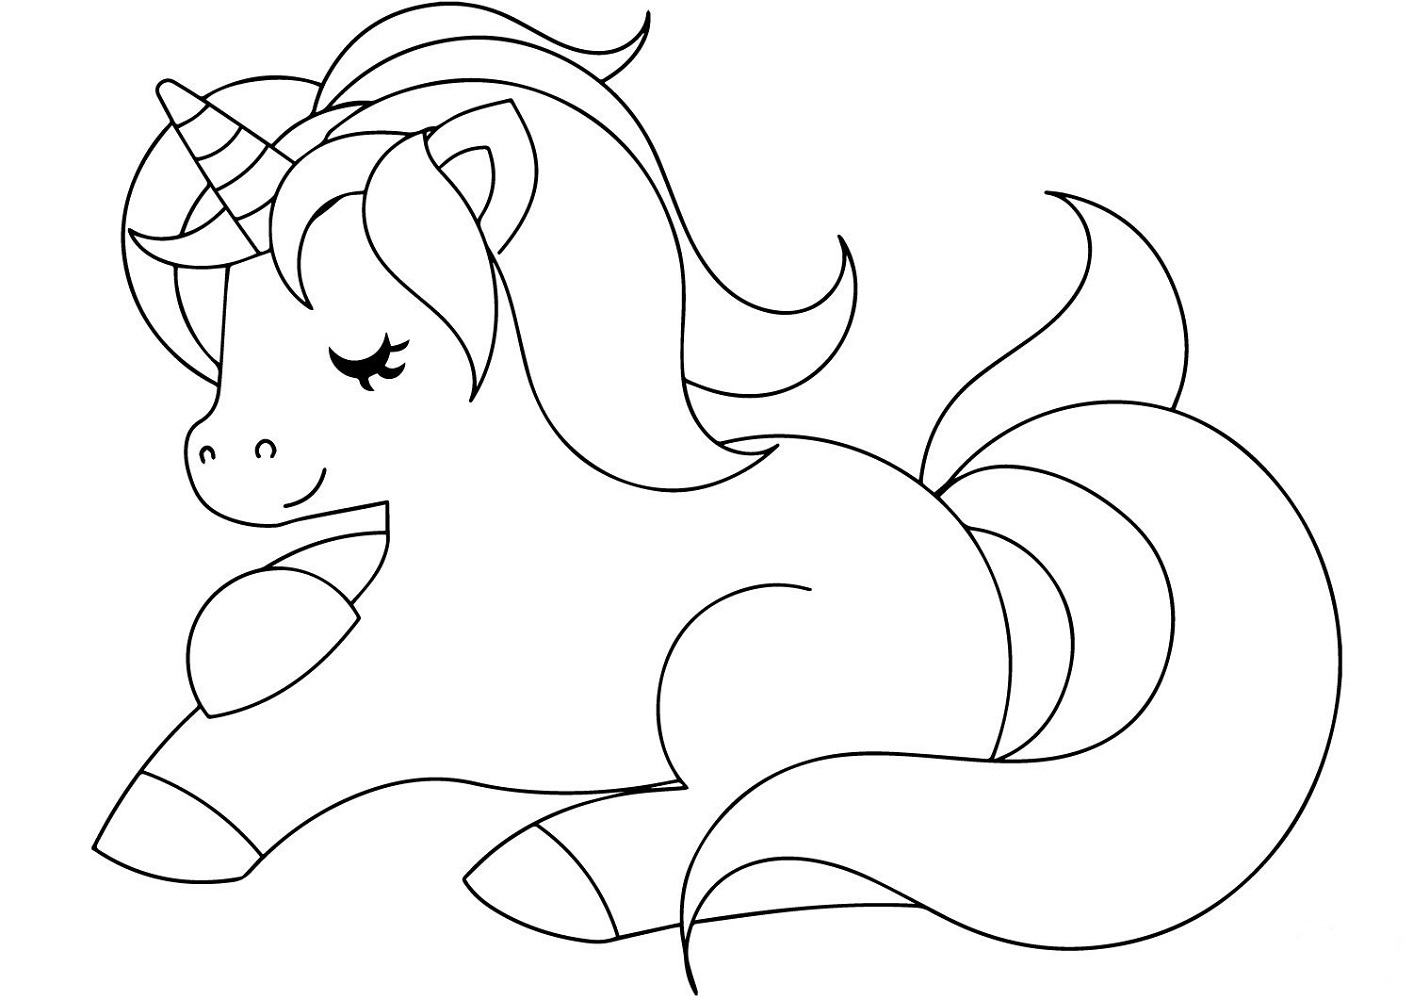 coloring page of unicorn free printable unicorn coloring pages for kids unicorn of coloring page